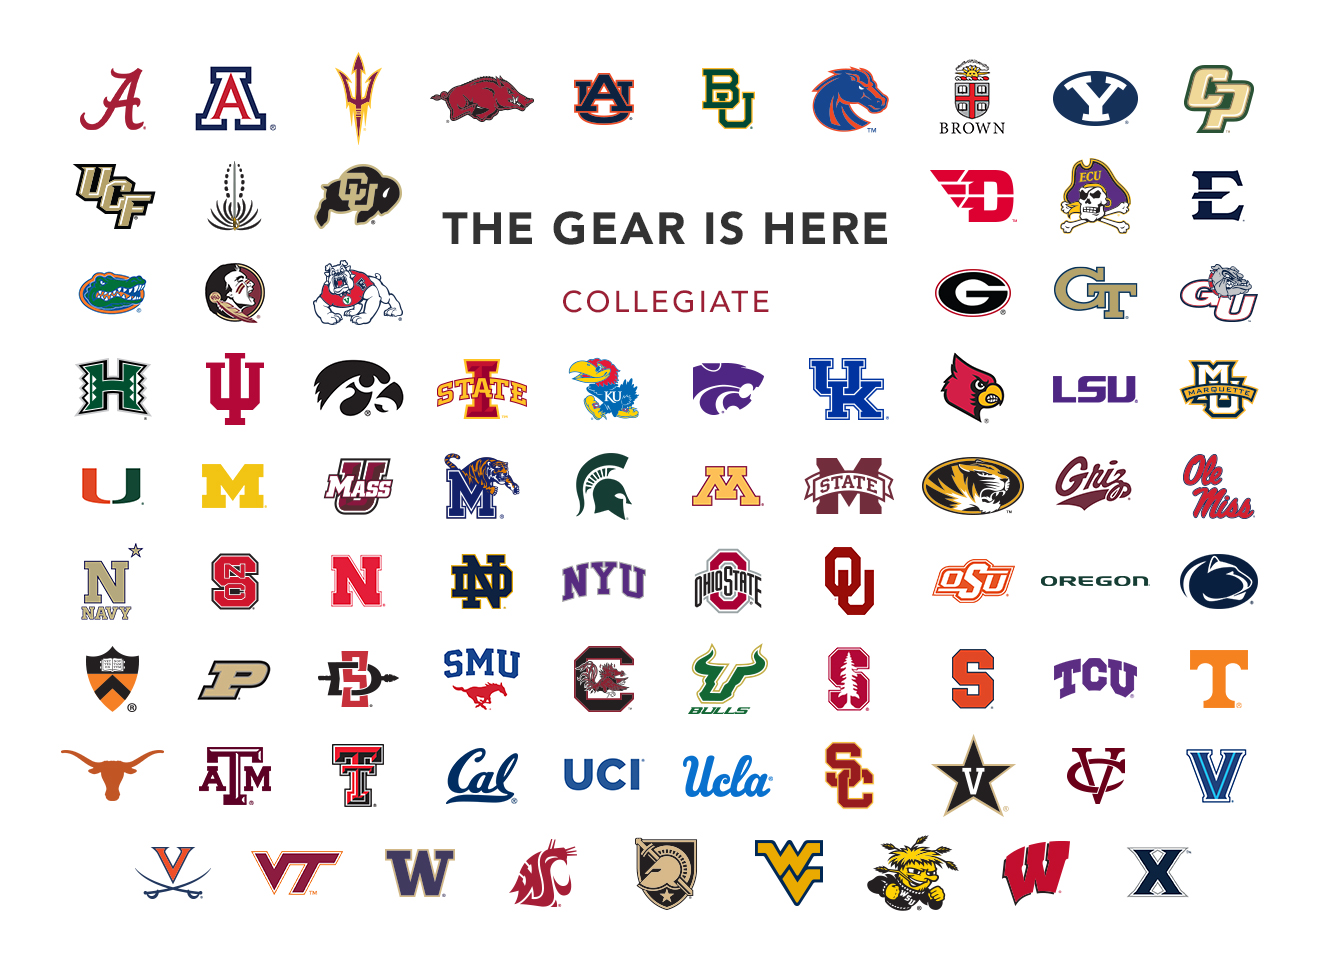 The Gear Is Here | Collegiate